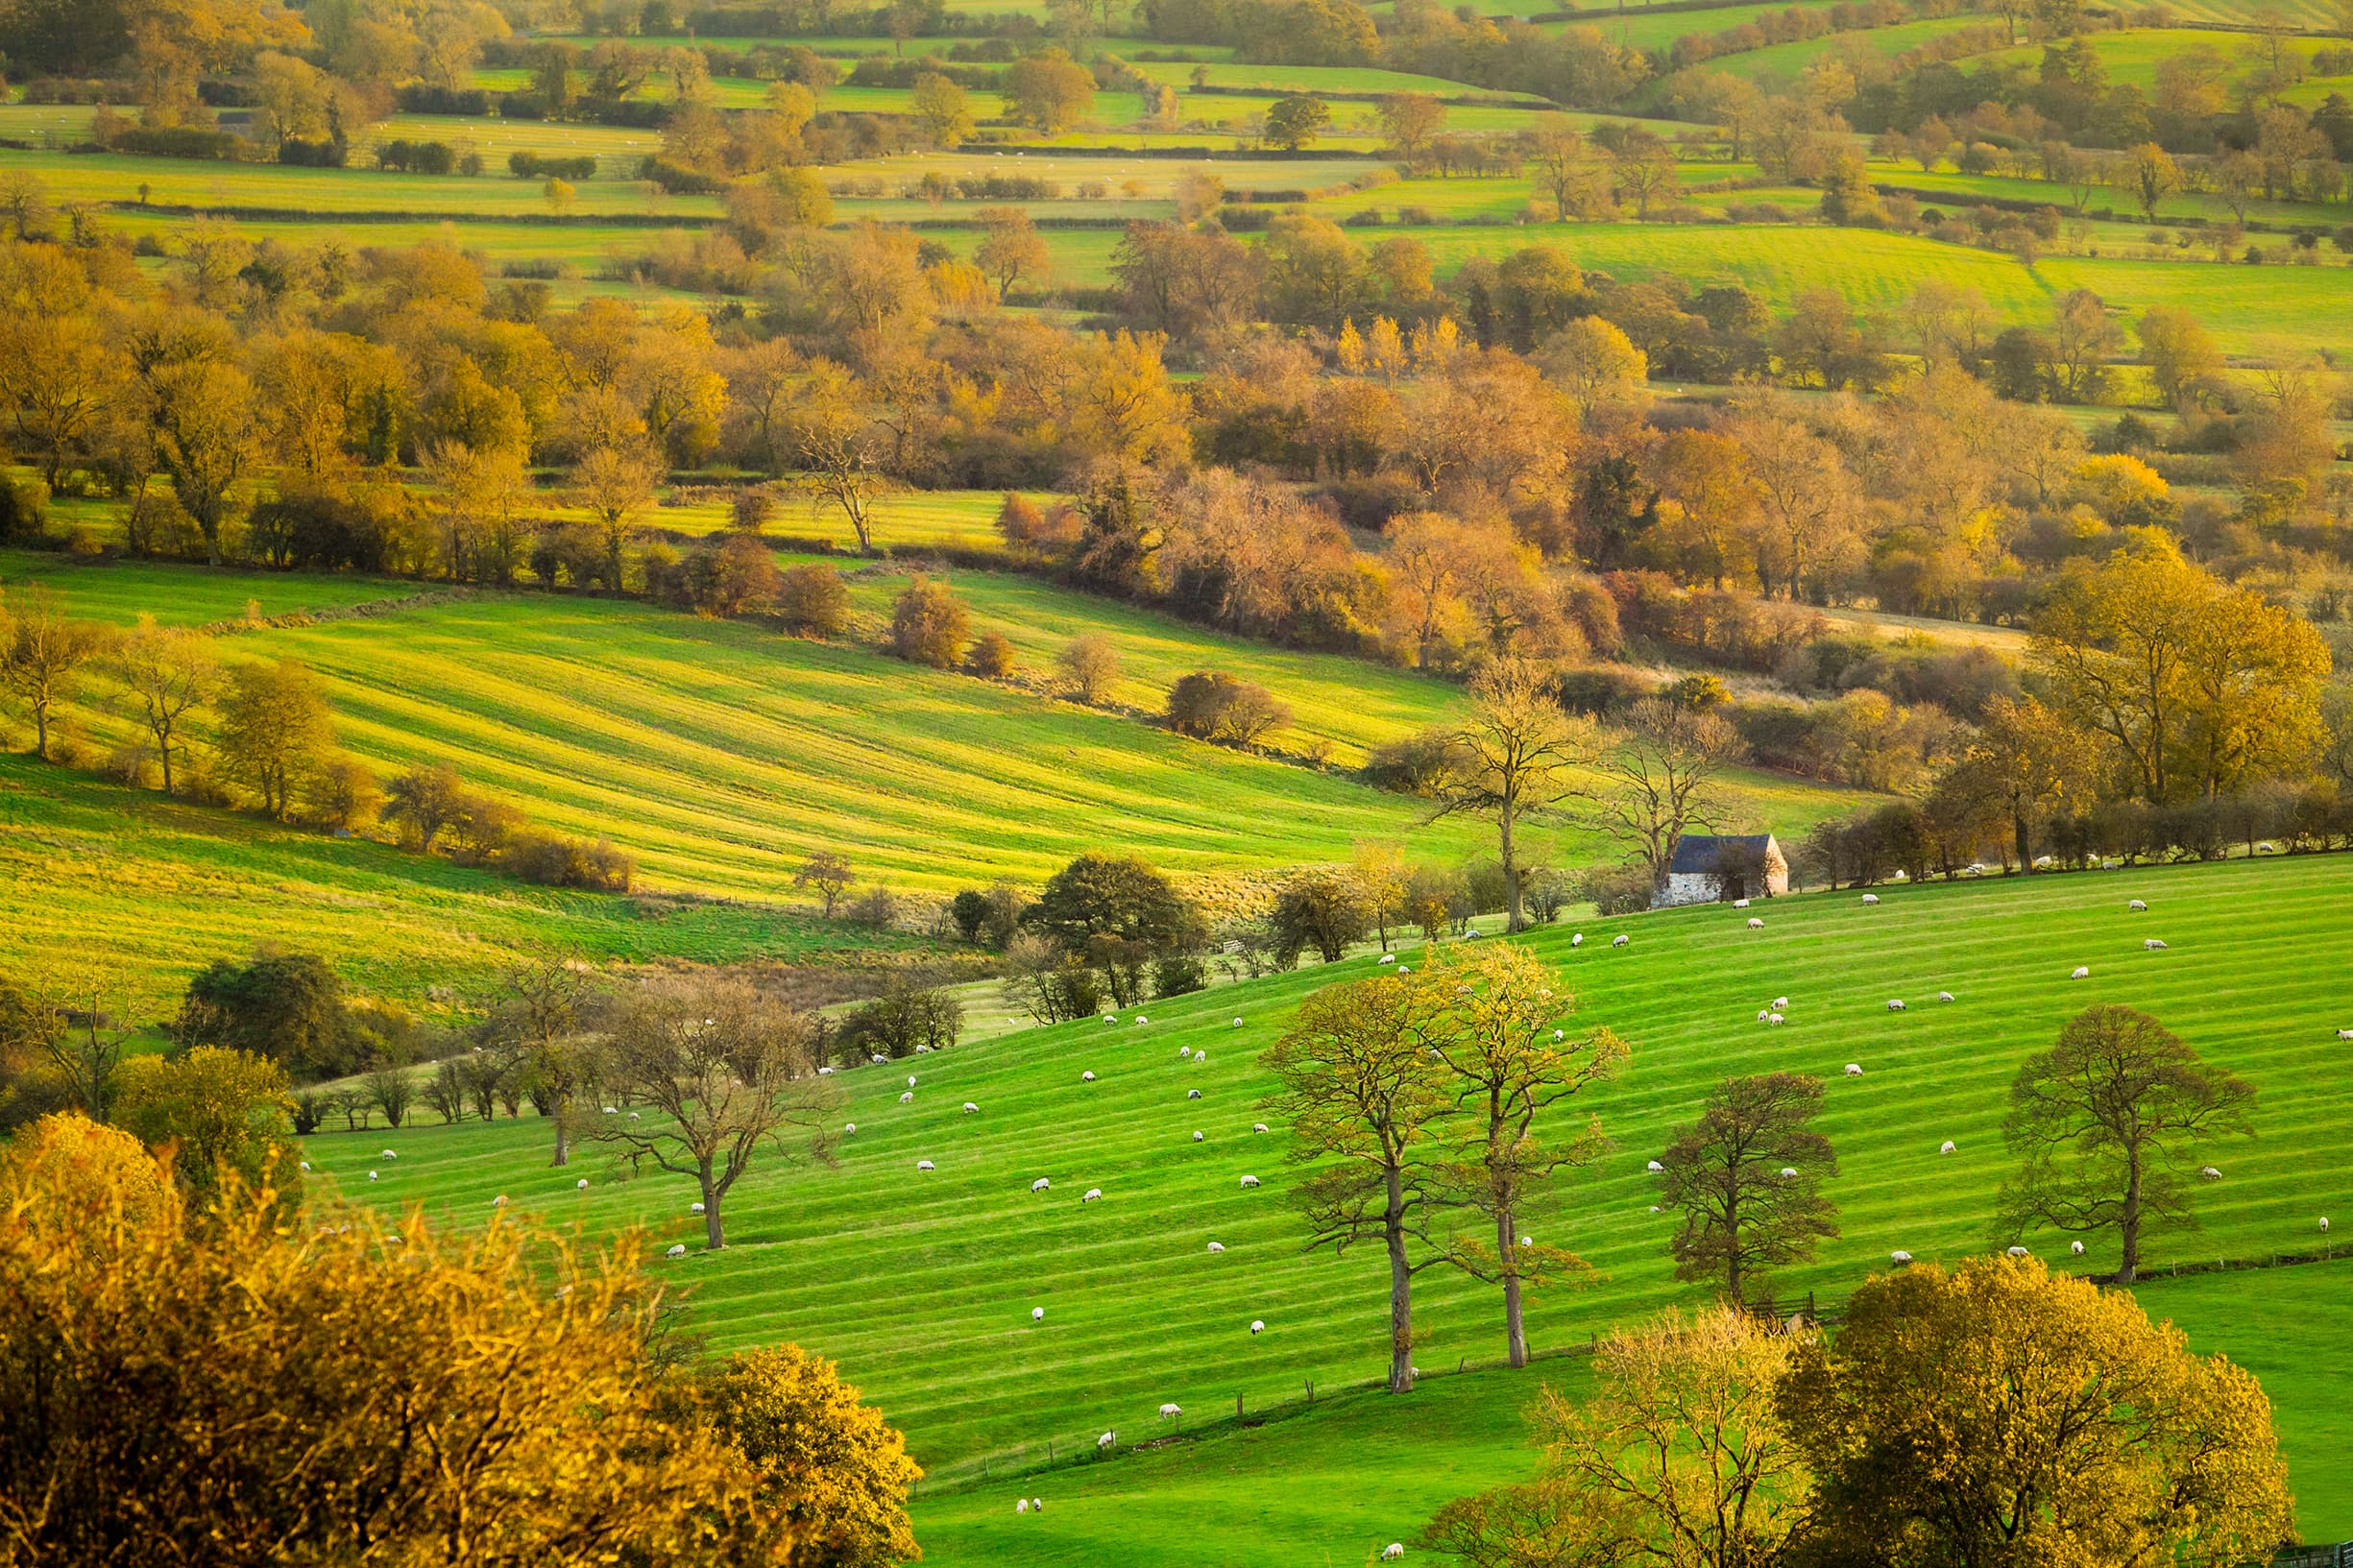 British countryside on an autumnal day - Bovine TB